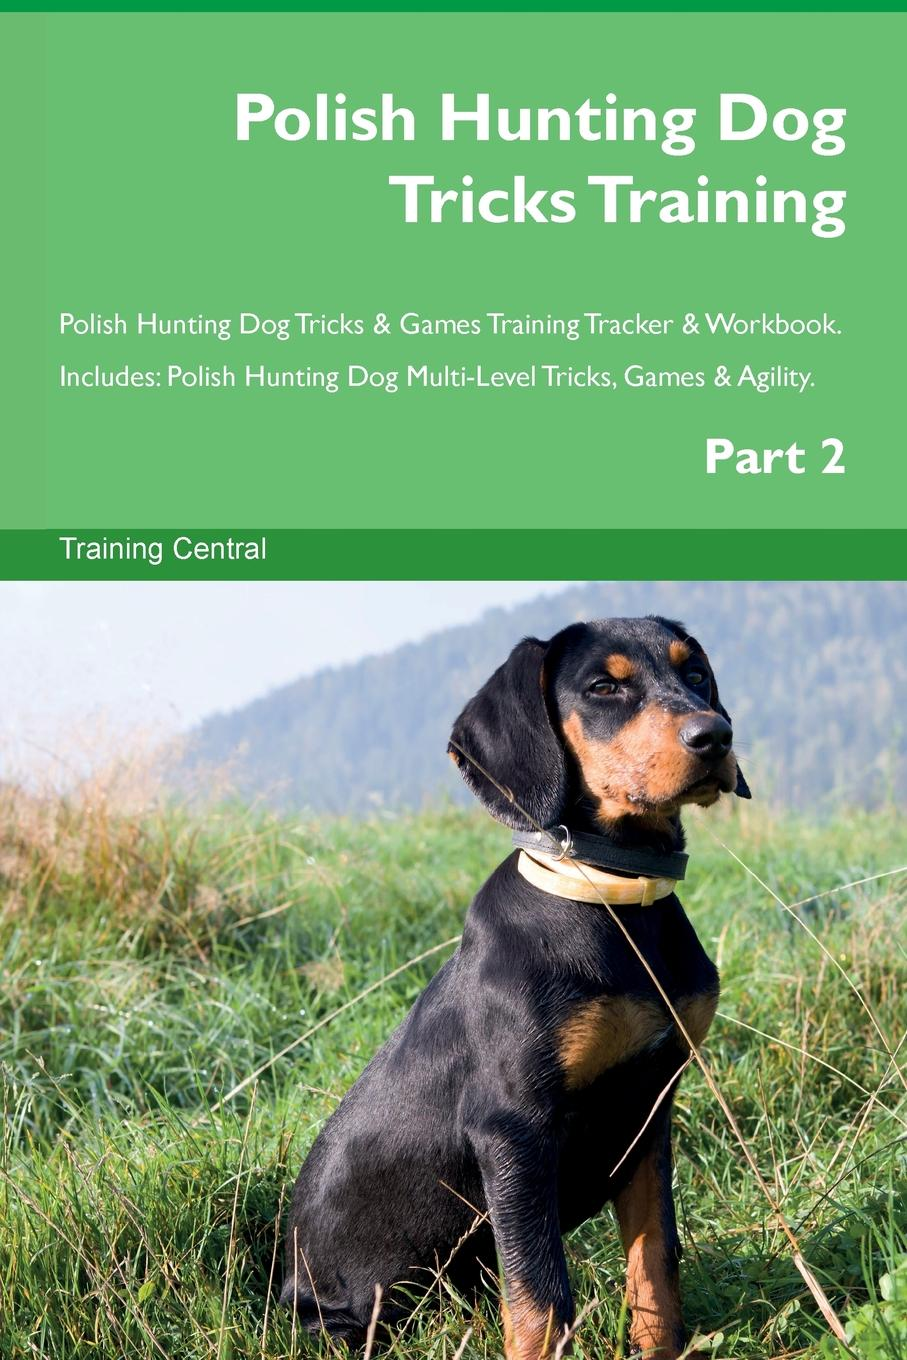 Training Central Polish Hunting Dog Tricks Training Polish Hunting Dog Tricks . Games Training Tracker . Workbook. Includes. Polish Hunting Dog Multi-Level Tricks, Games . Agility. Part 2 this book loves you